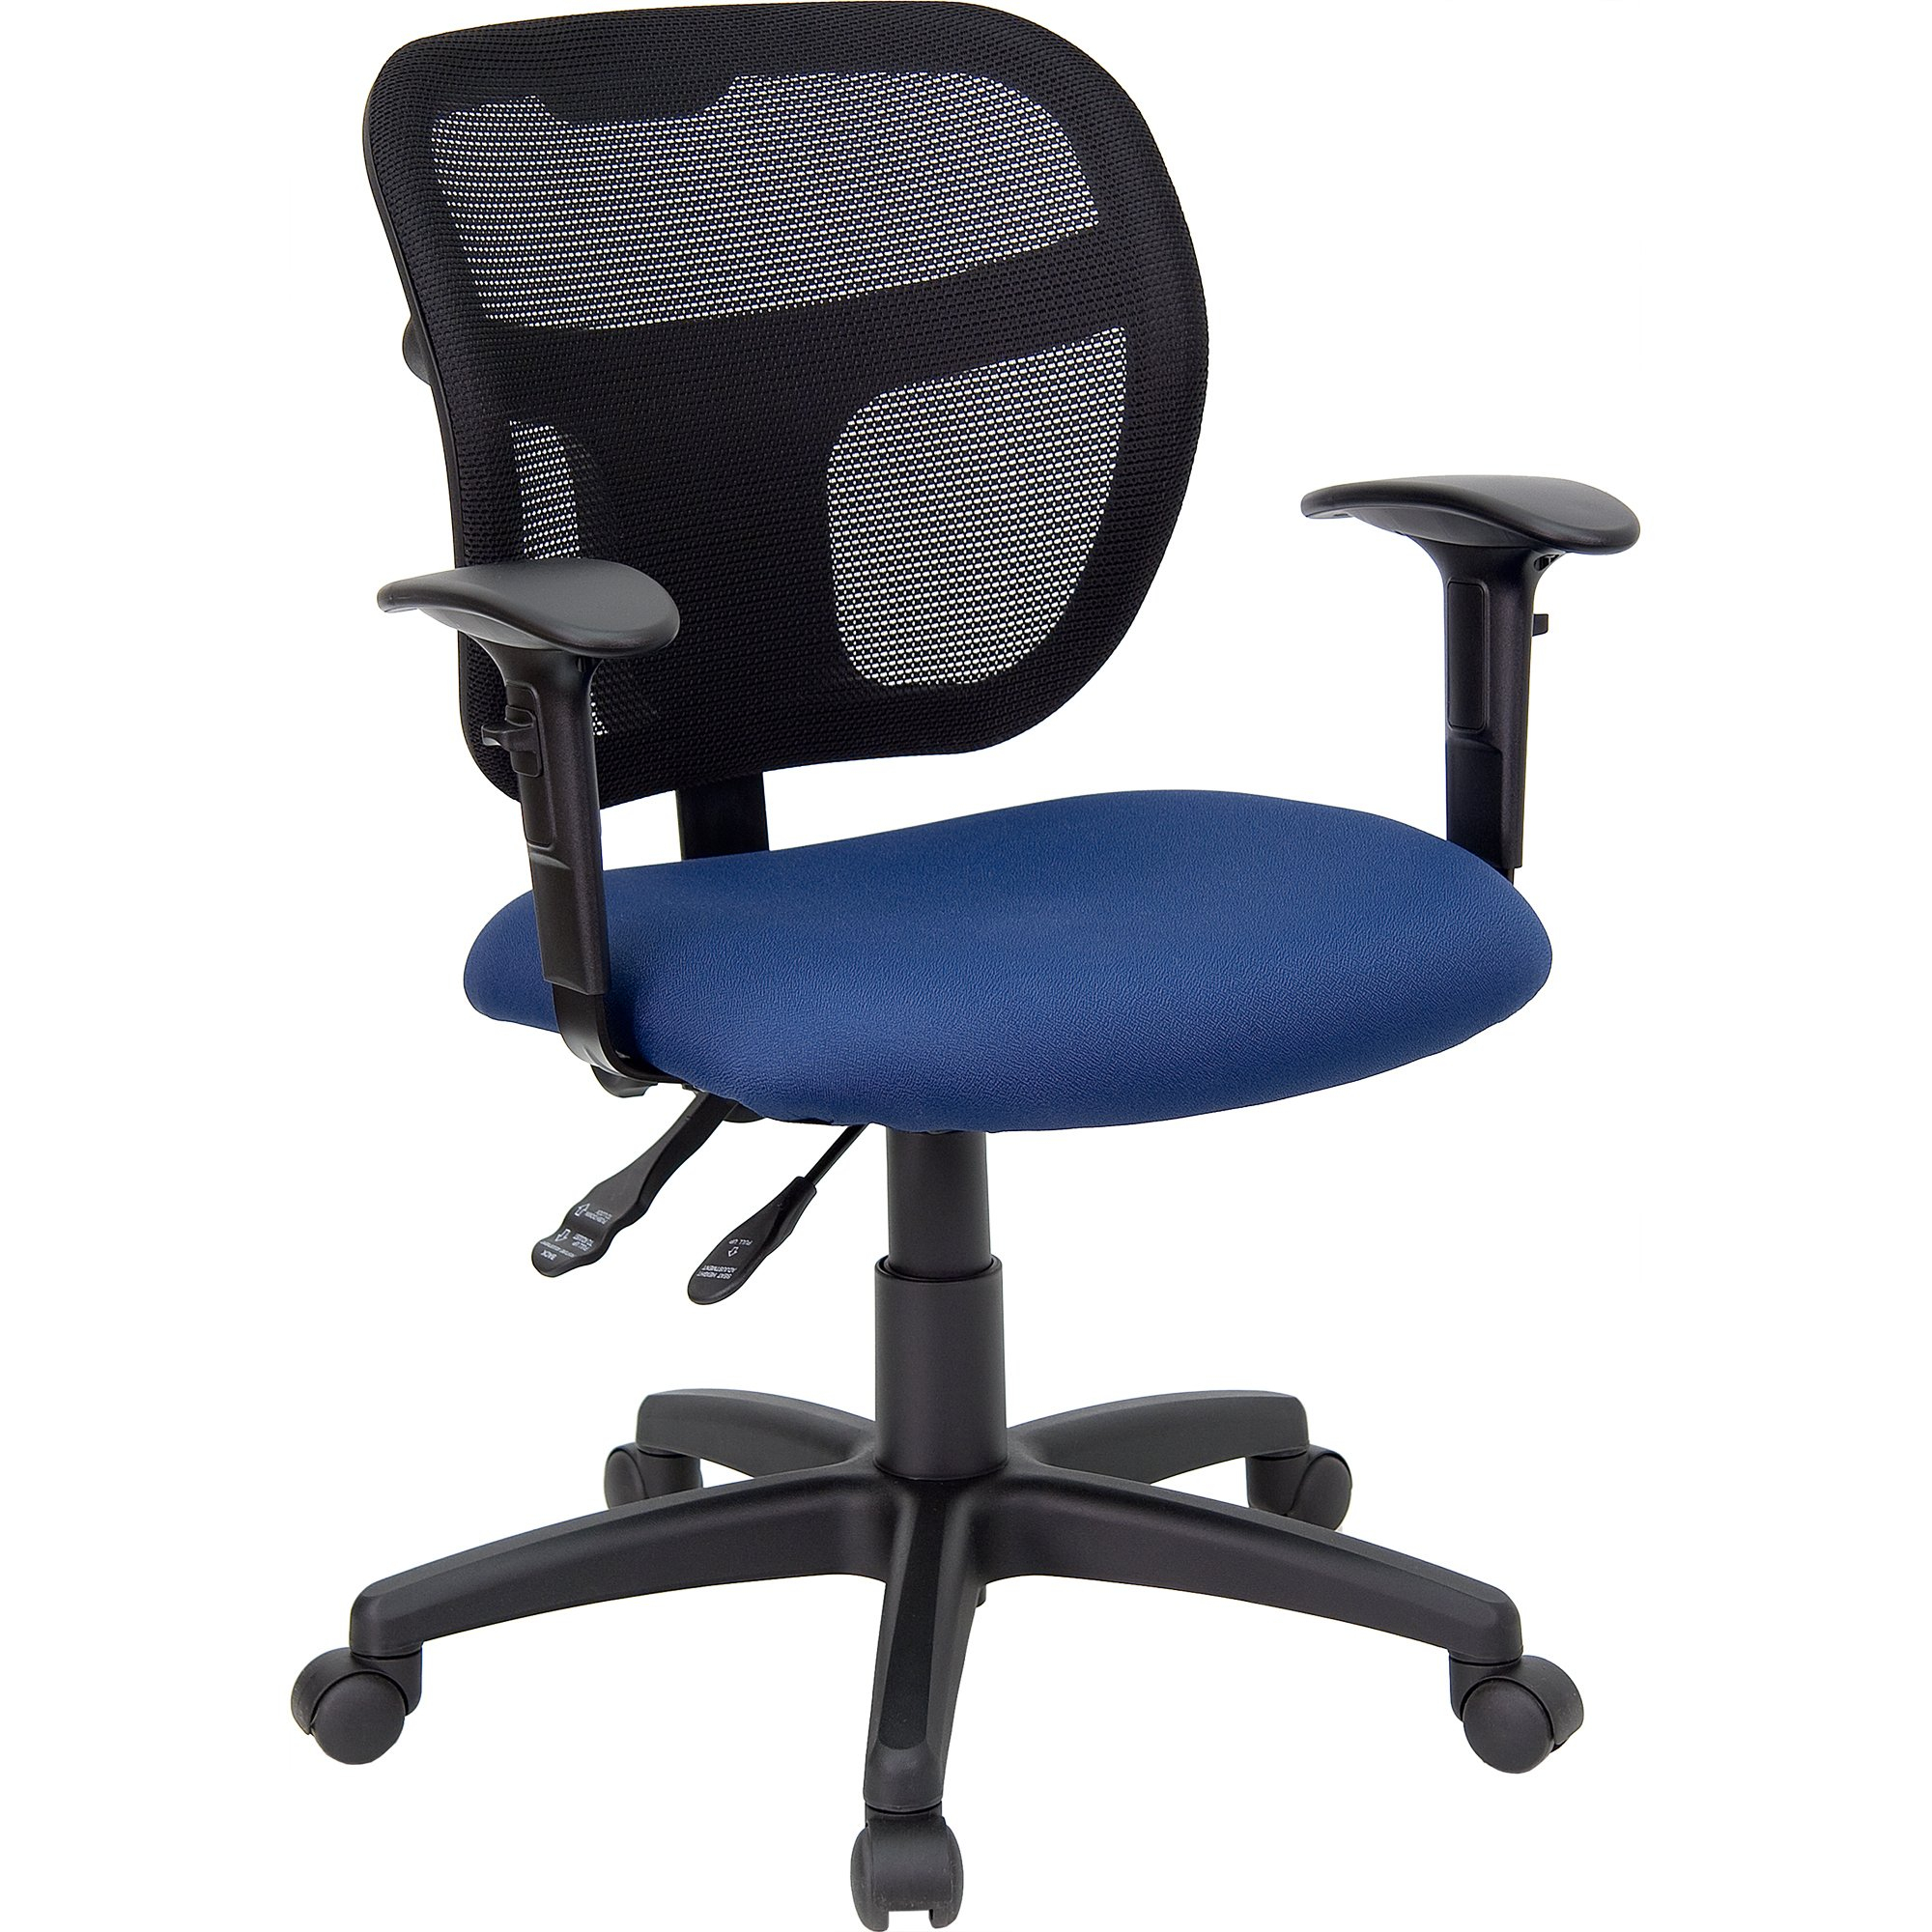 Shop Theo Mesh Dual Paddle Control Adjustable Swivel Ergonomic Pertaining To Theo Ii Swivel Chairs (Image 14 of 20)